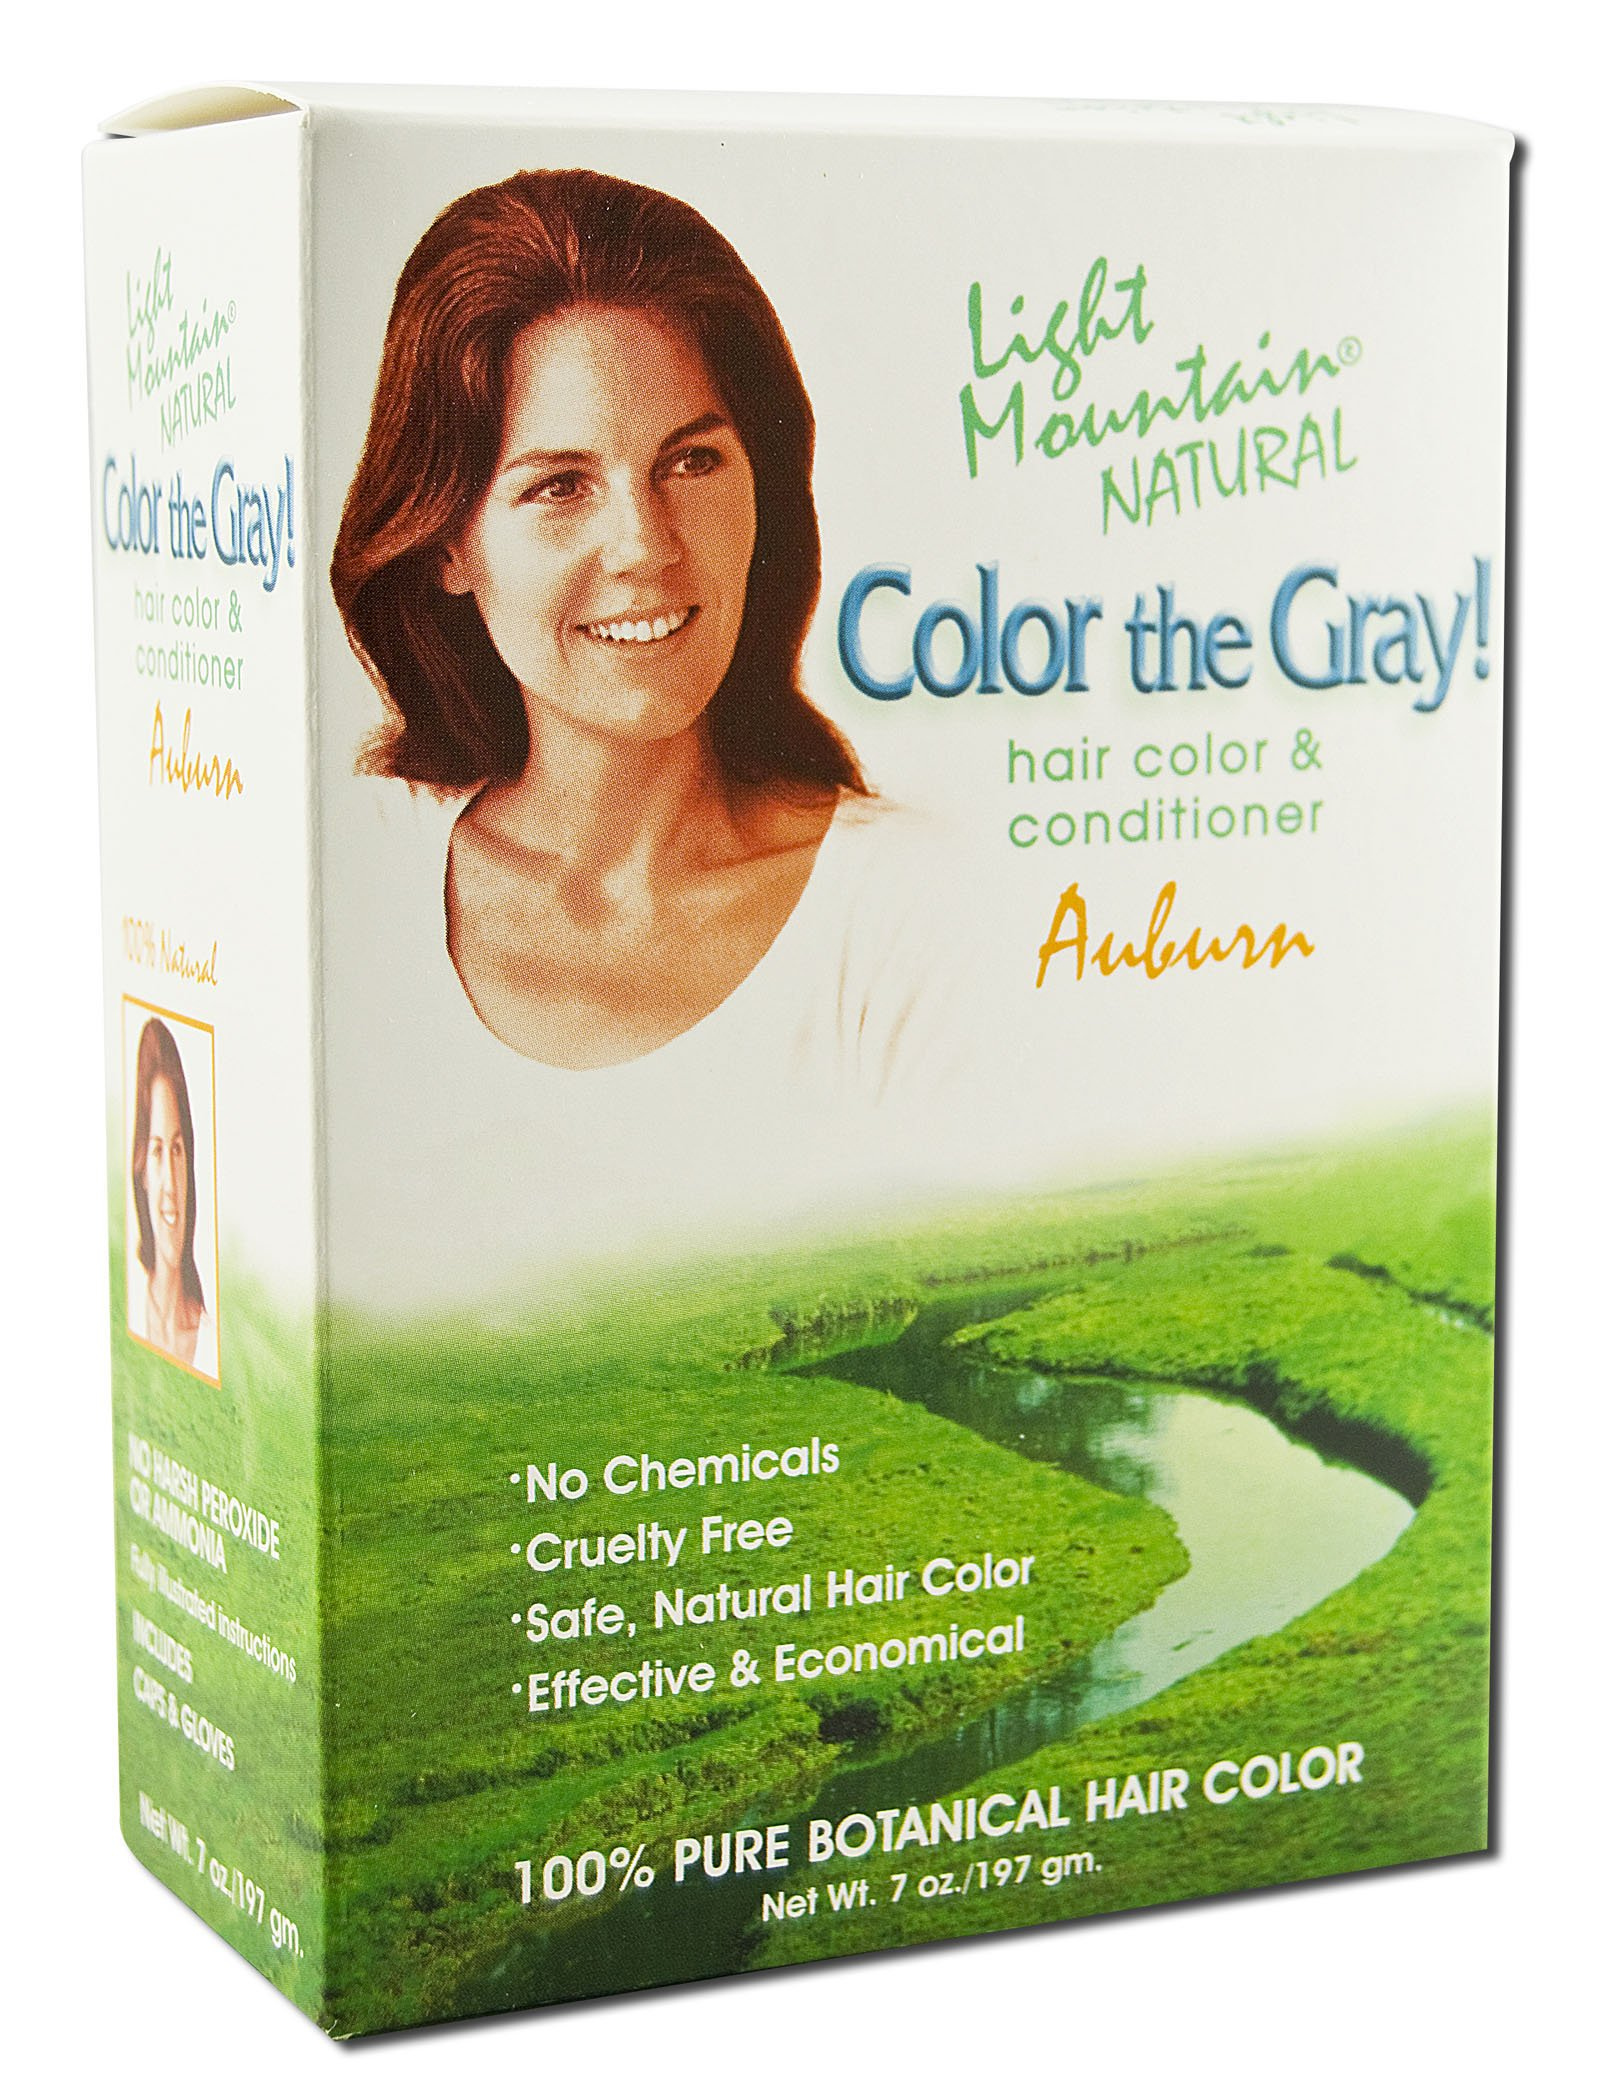 Light Mountain Color the Gray Auburn - 7 fl oz by LIGHT MOUNTAIN